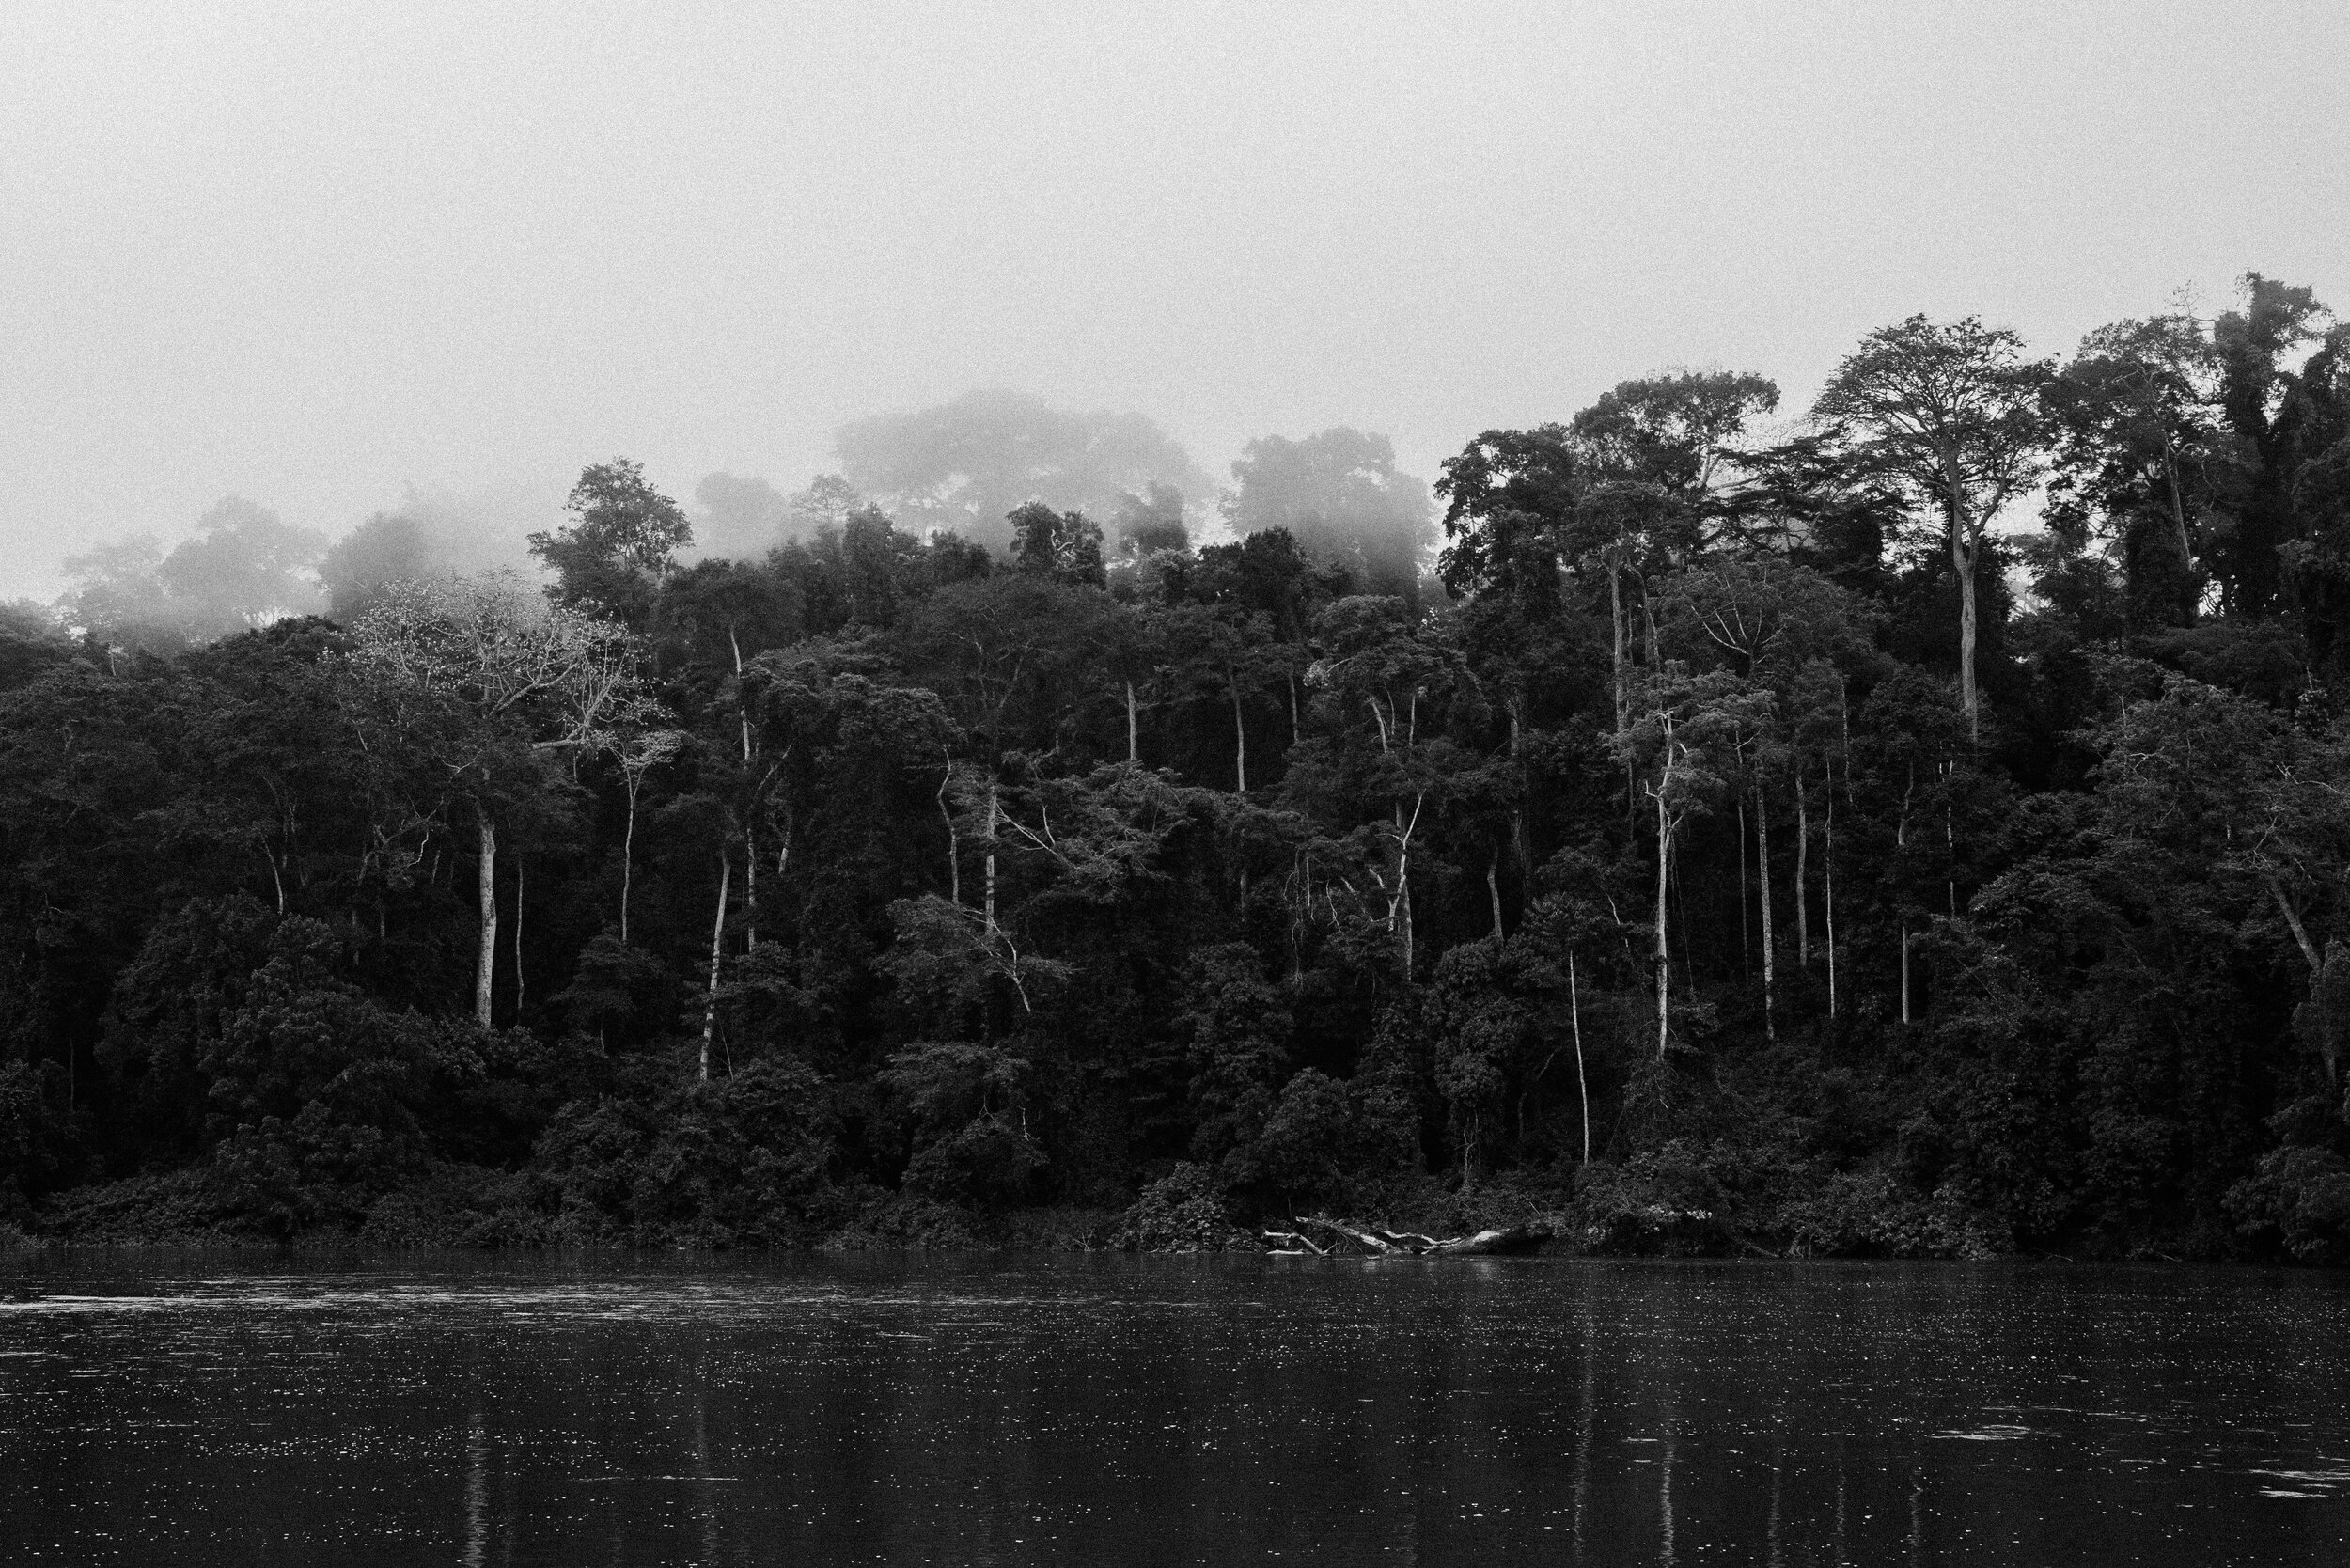 Congolese Equatorial Rainforest, Boumba River, Cameroon -  Tito West, 2016